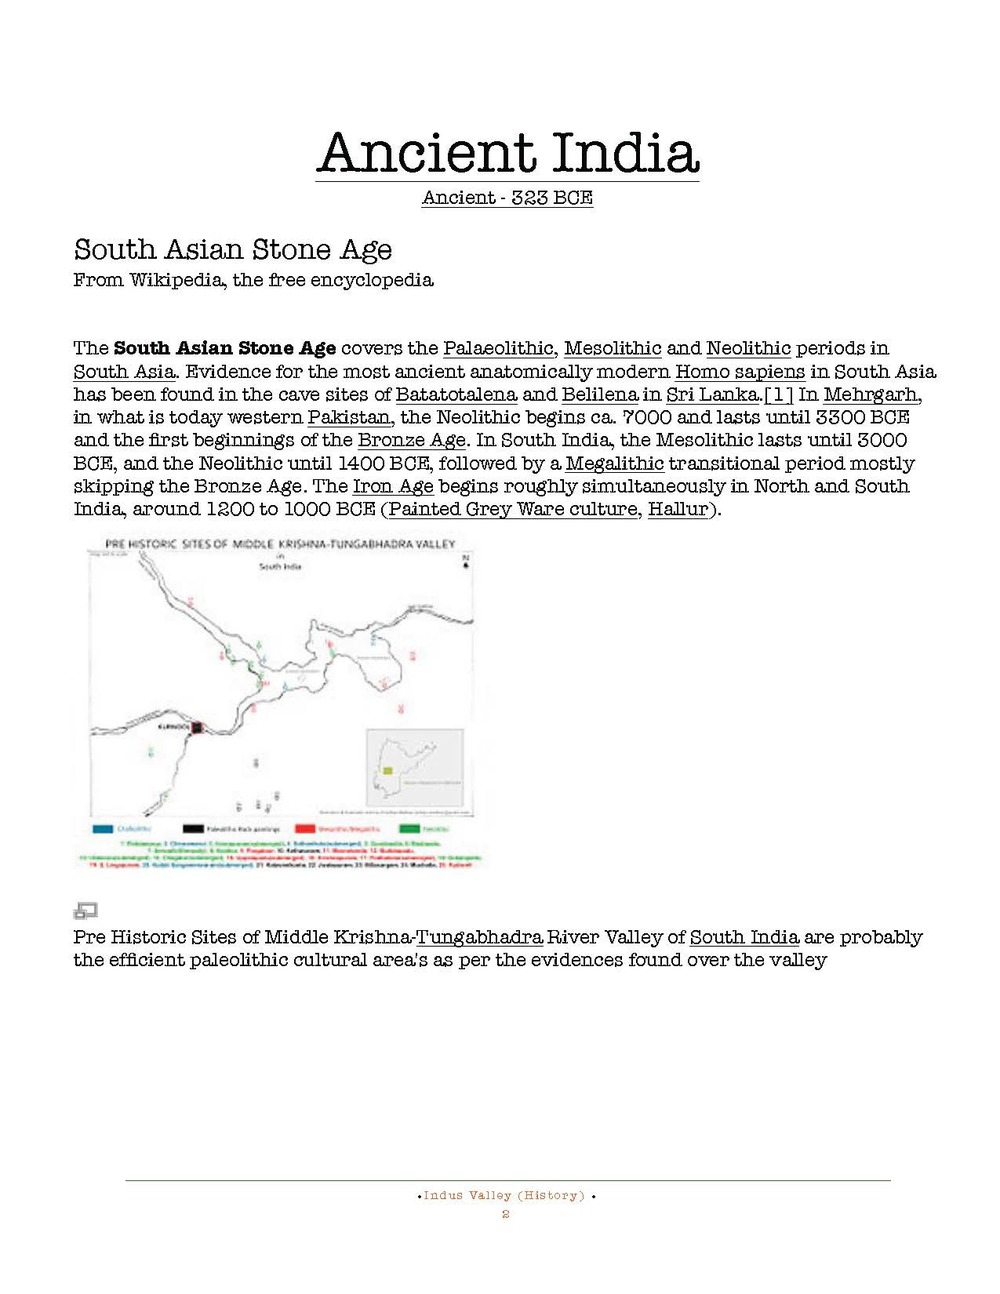 HOCE- Ancient India Notes_Page_002.jpg